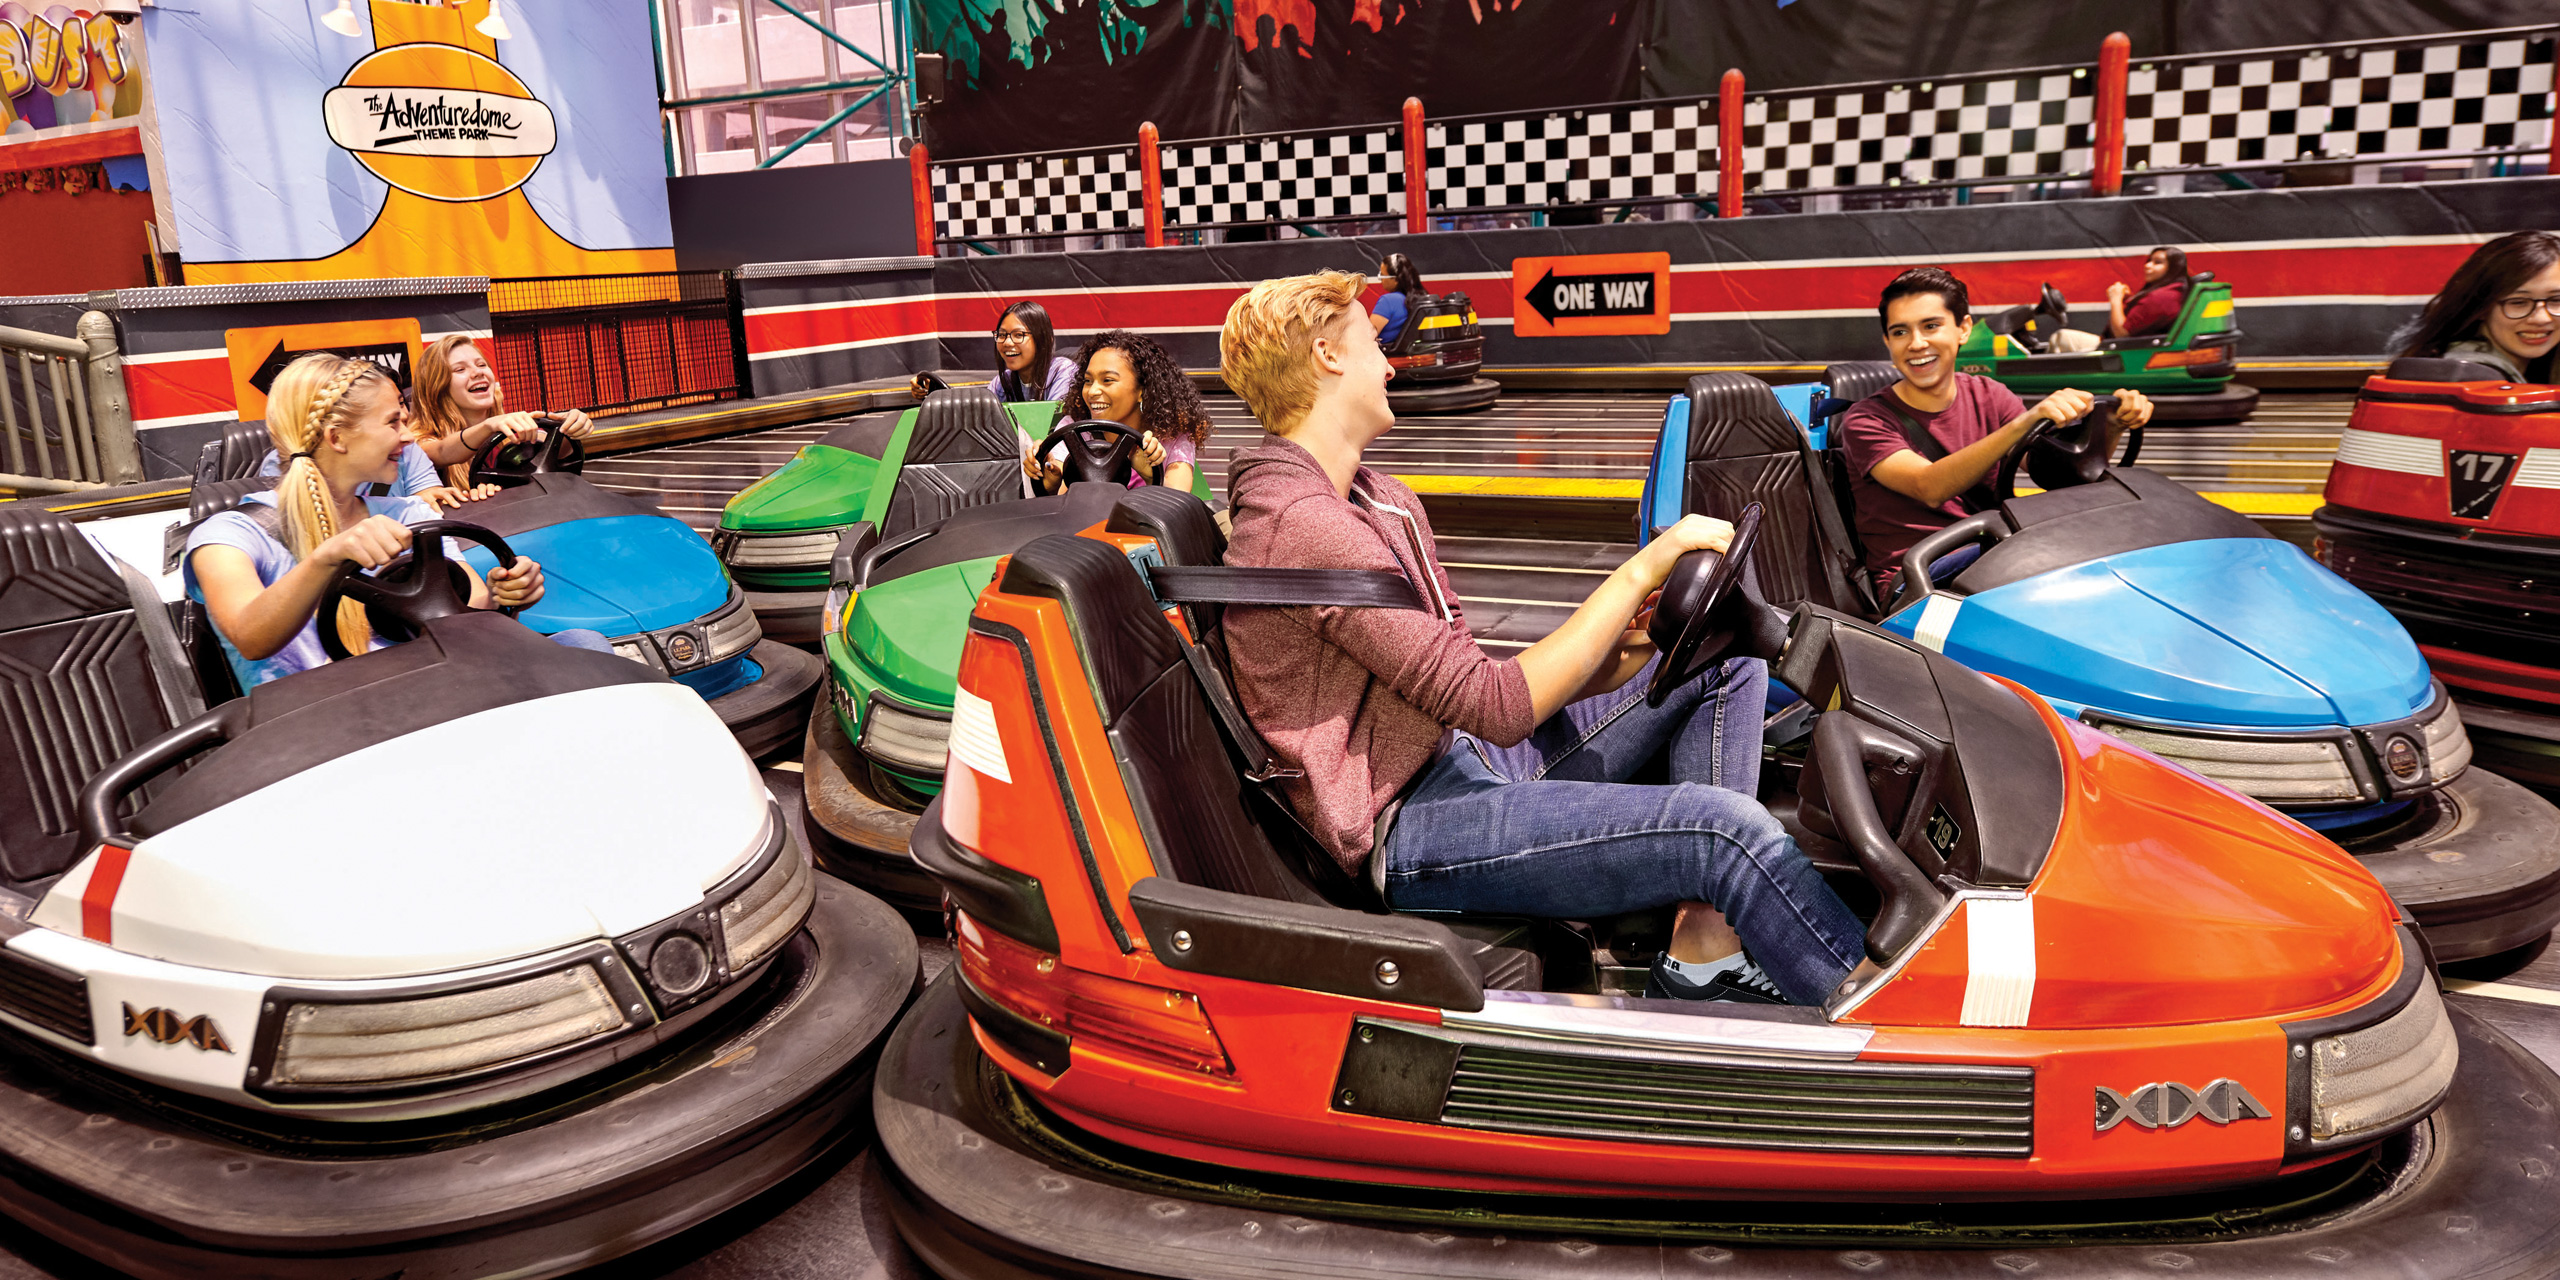 Adventuredome bumper cars; Courtesy of Circus Circus